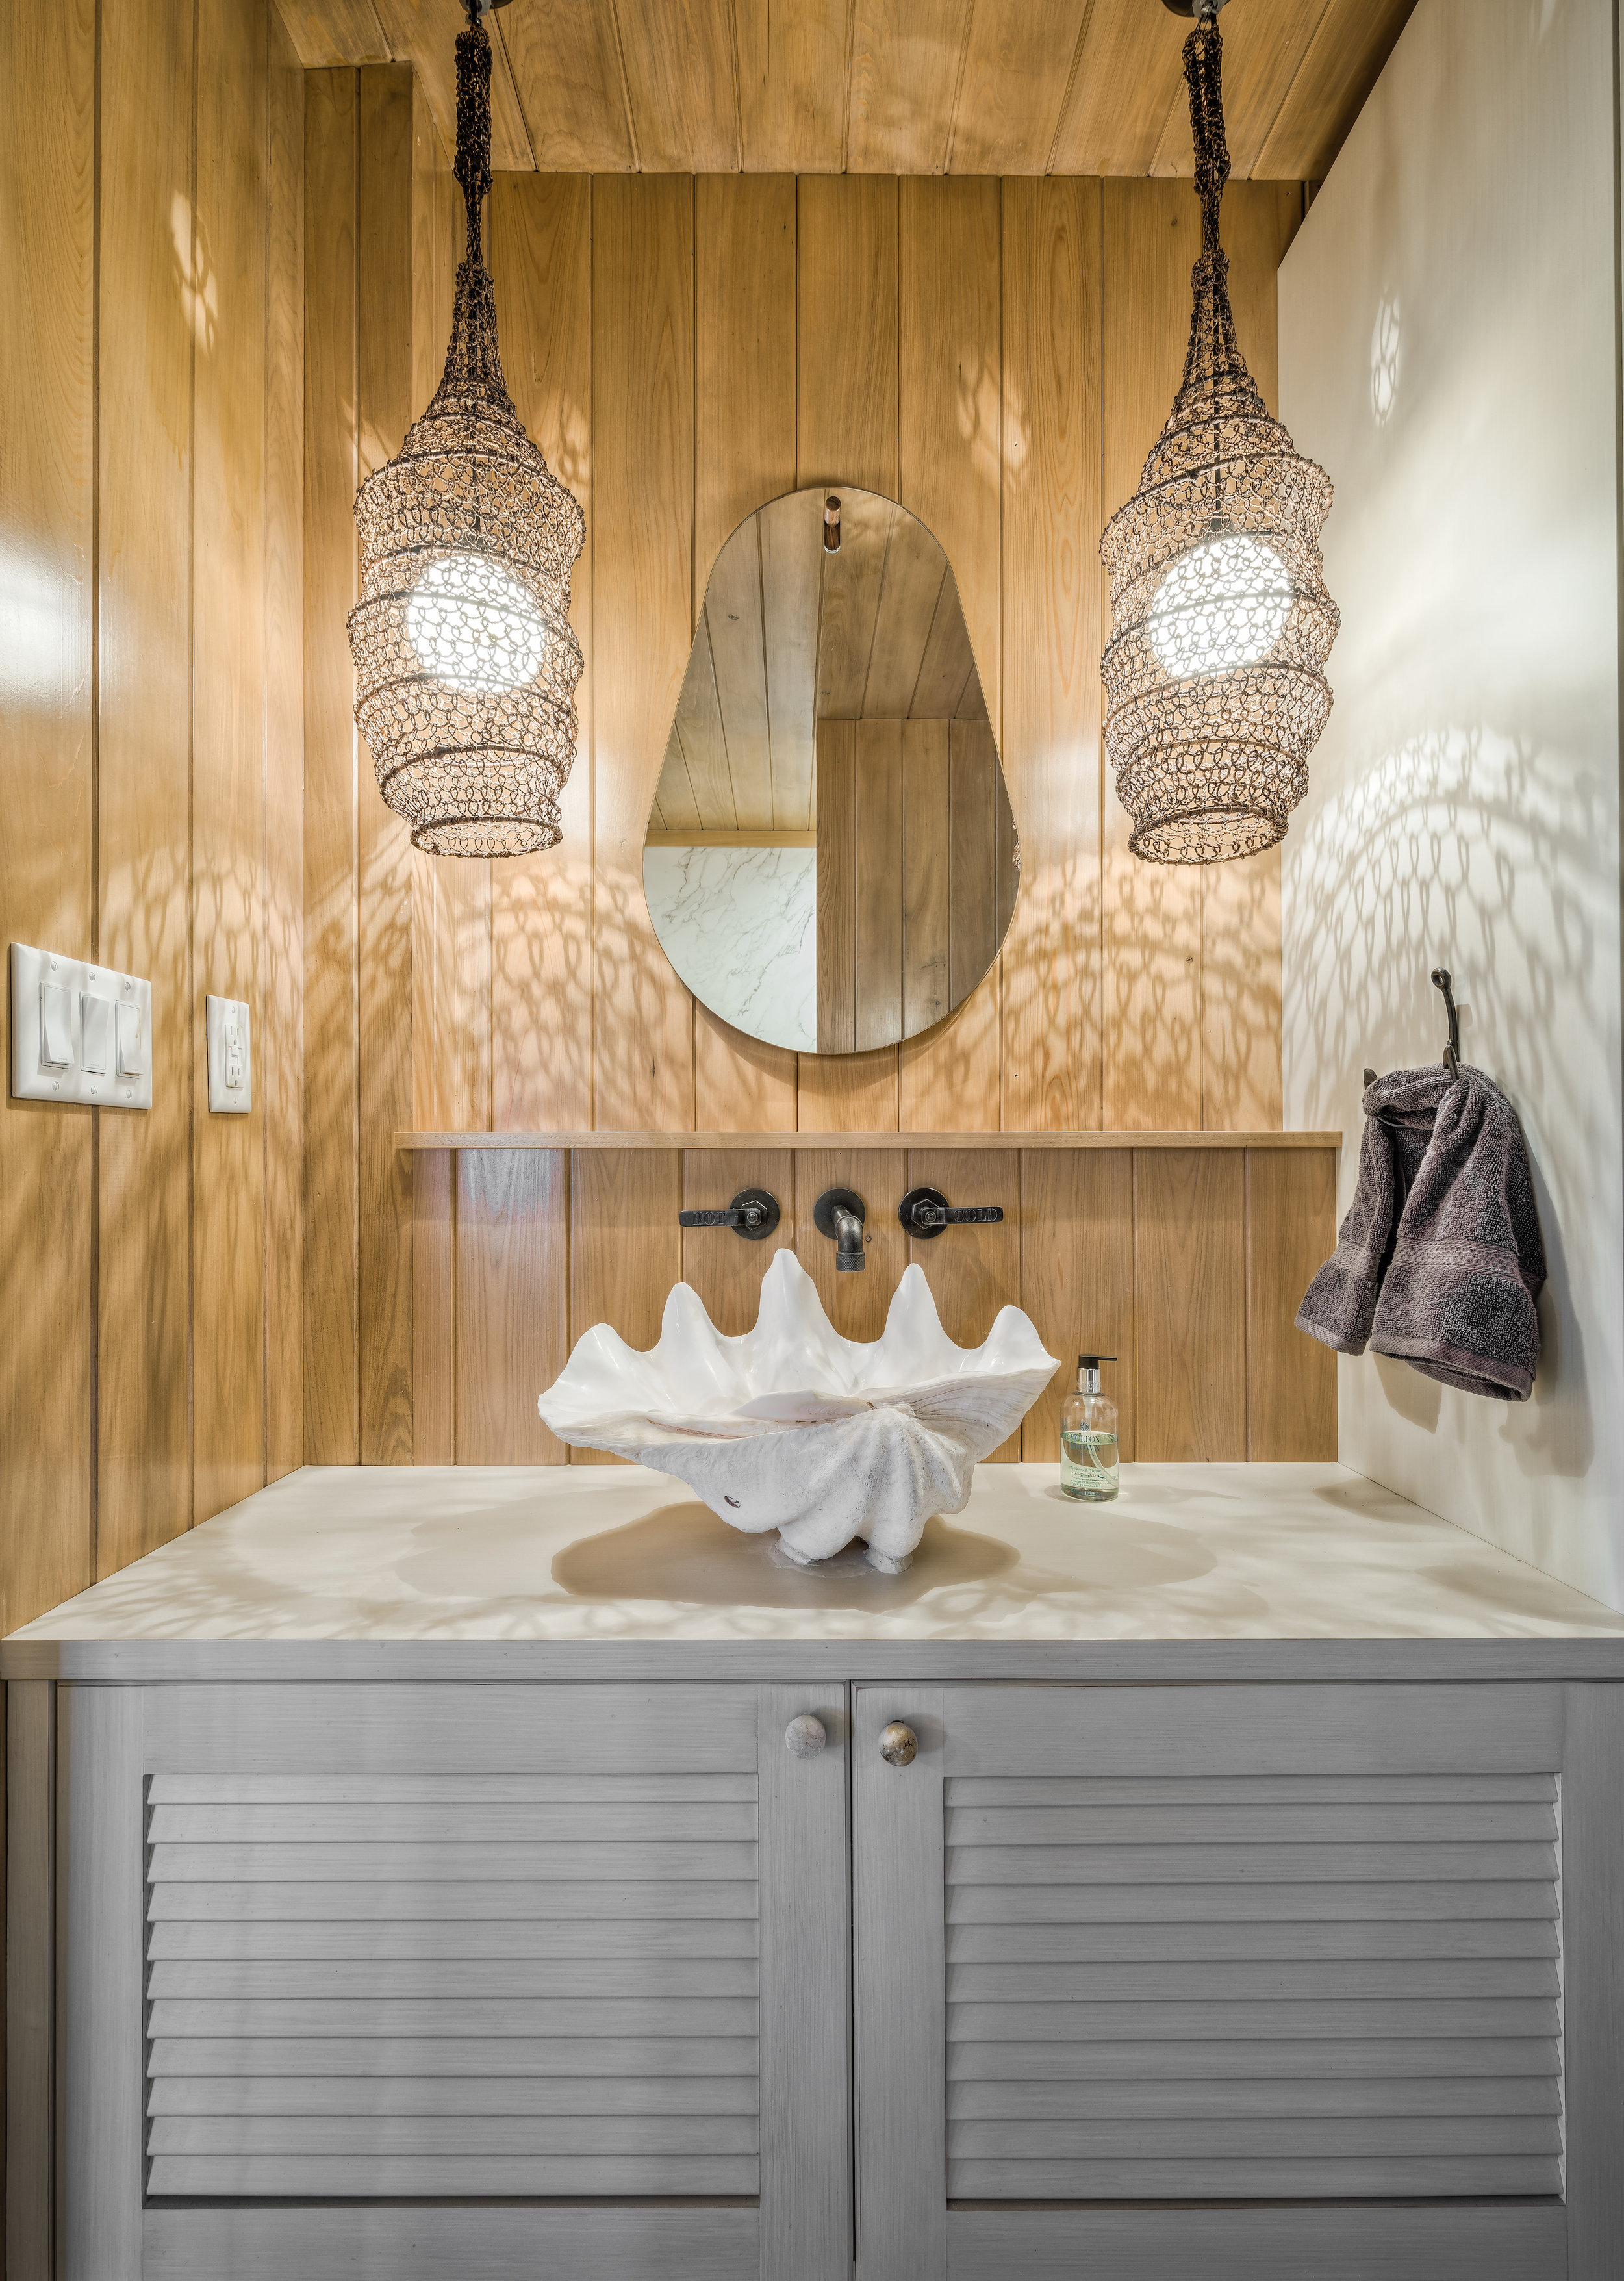 Private Island Beach House Bathroom Authentic giant clam shell sink with custom cabinetry, vintage pipe fittings and fishnet pendant lights